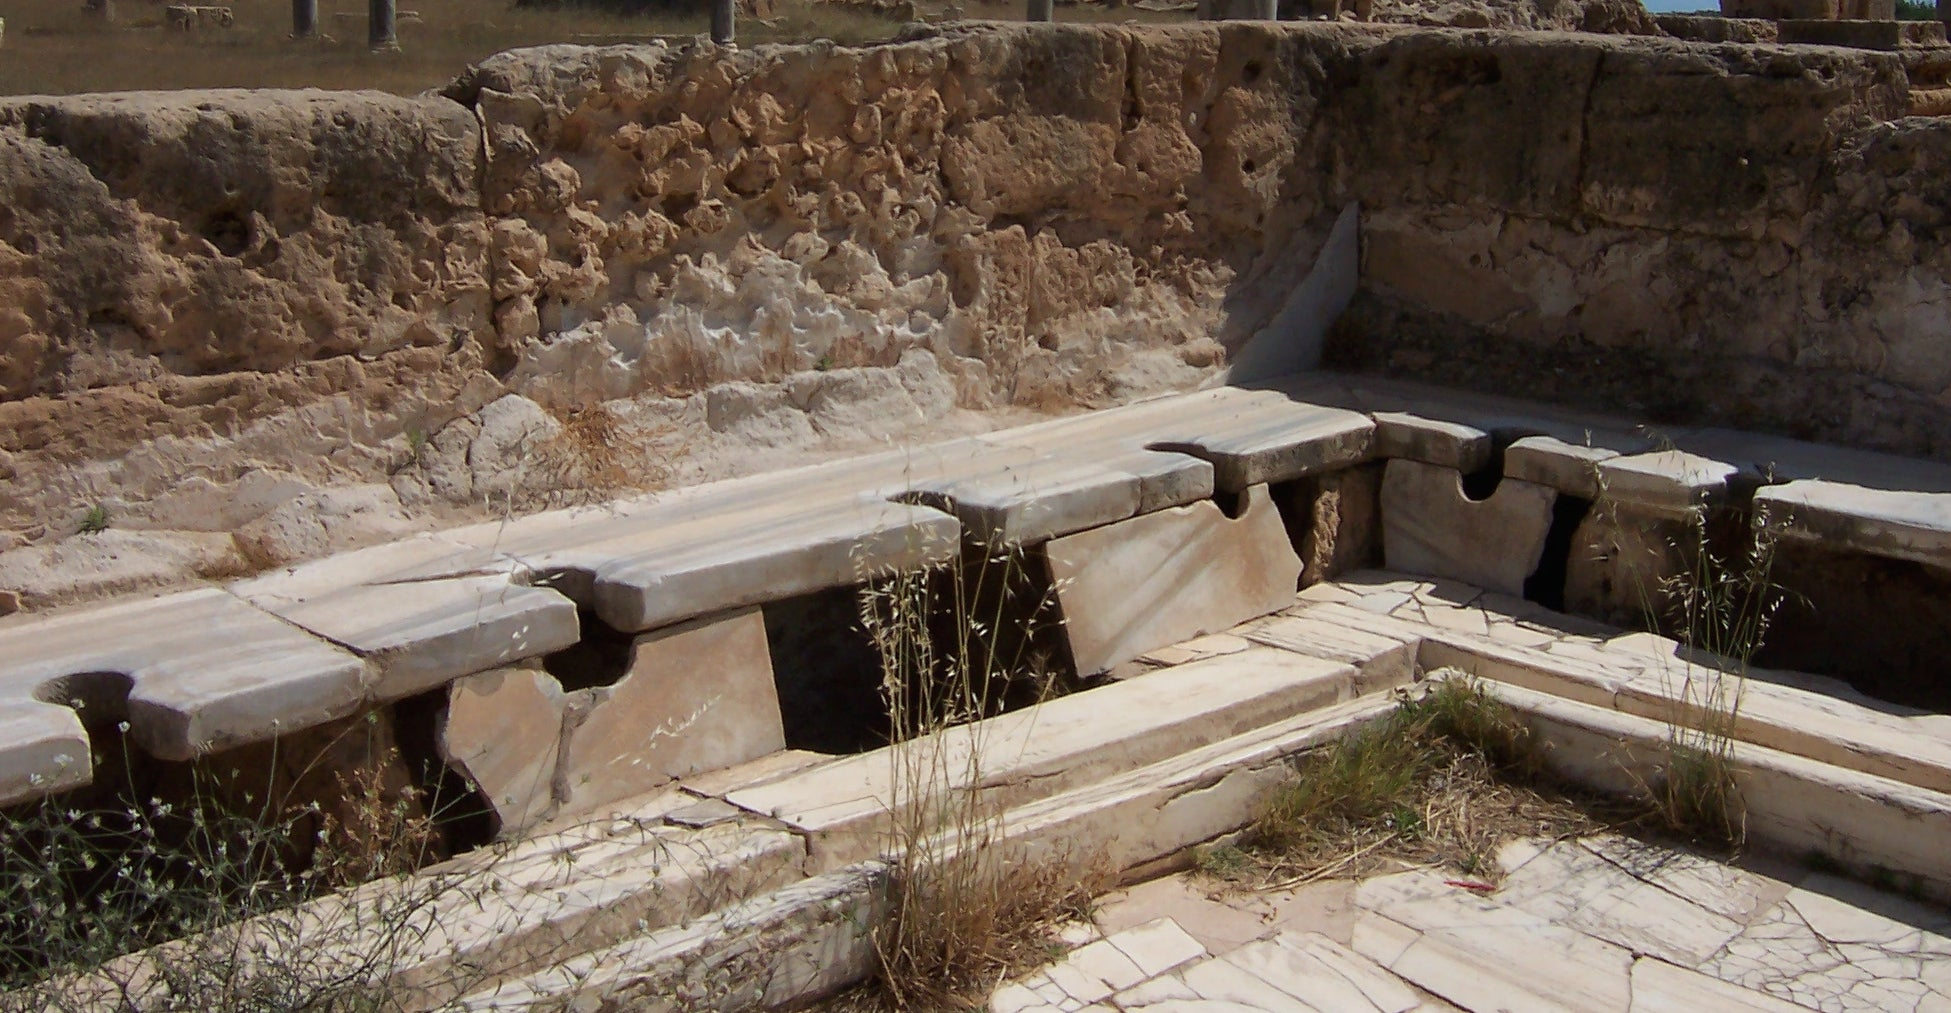 Roman Toilets Didn't Help With Hygiene